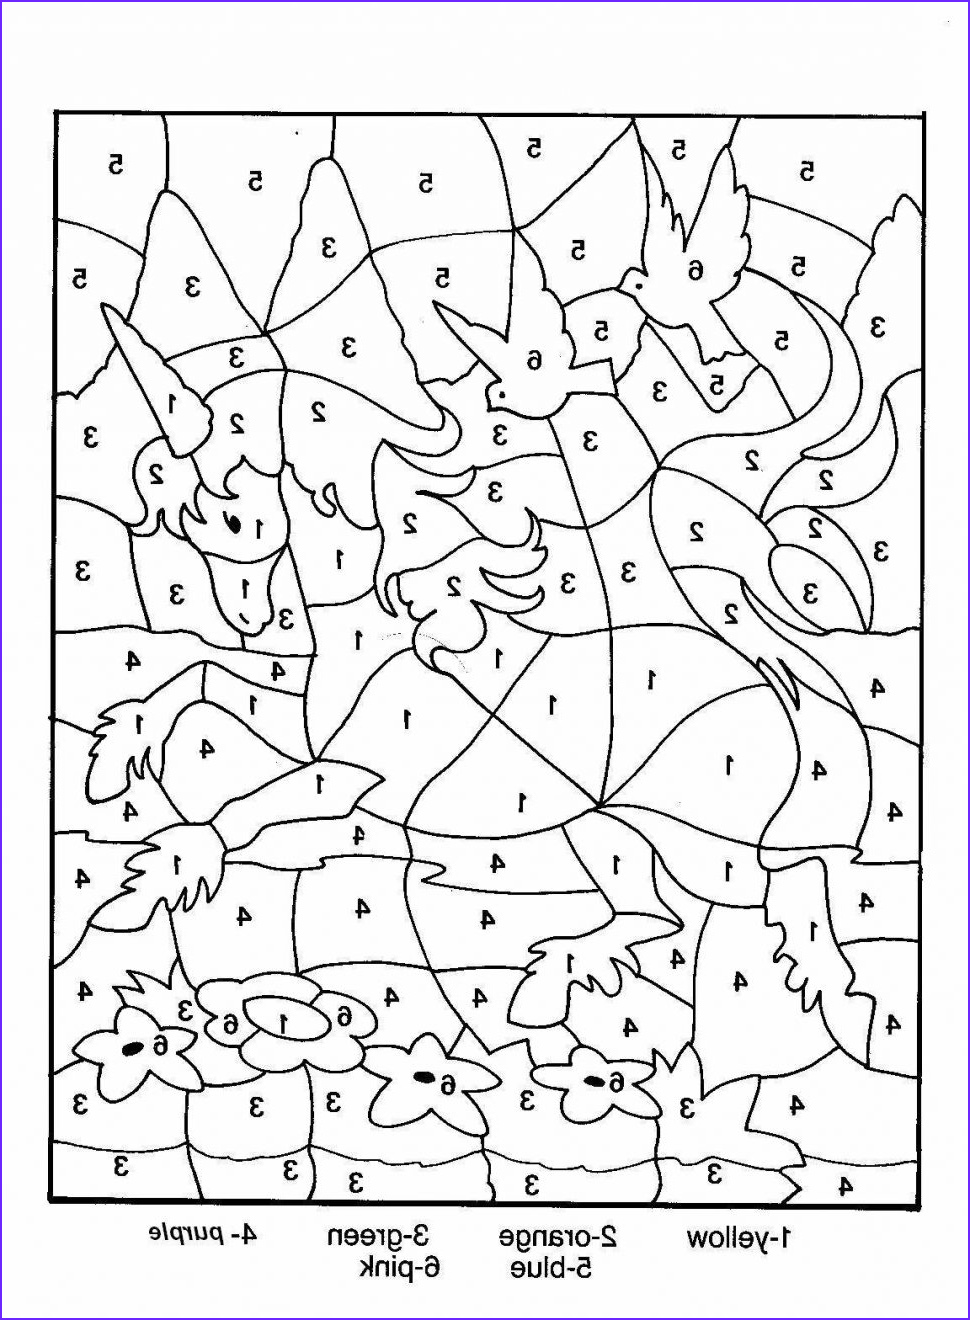 Coloring by Numbers Luxury Images Coloring Subtraction Worksheets Worksheet Mogenk Paper Works